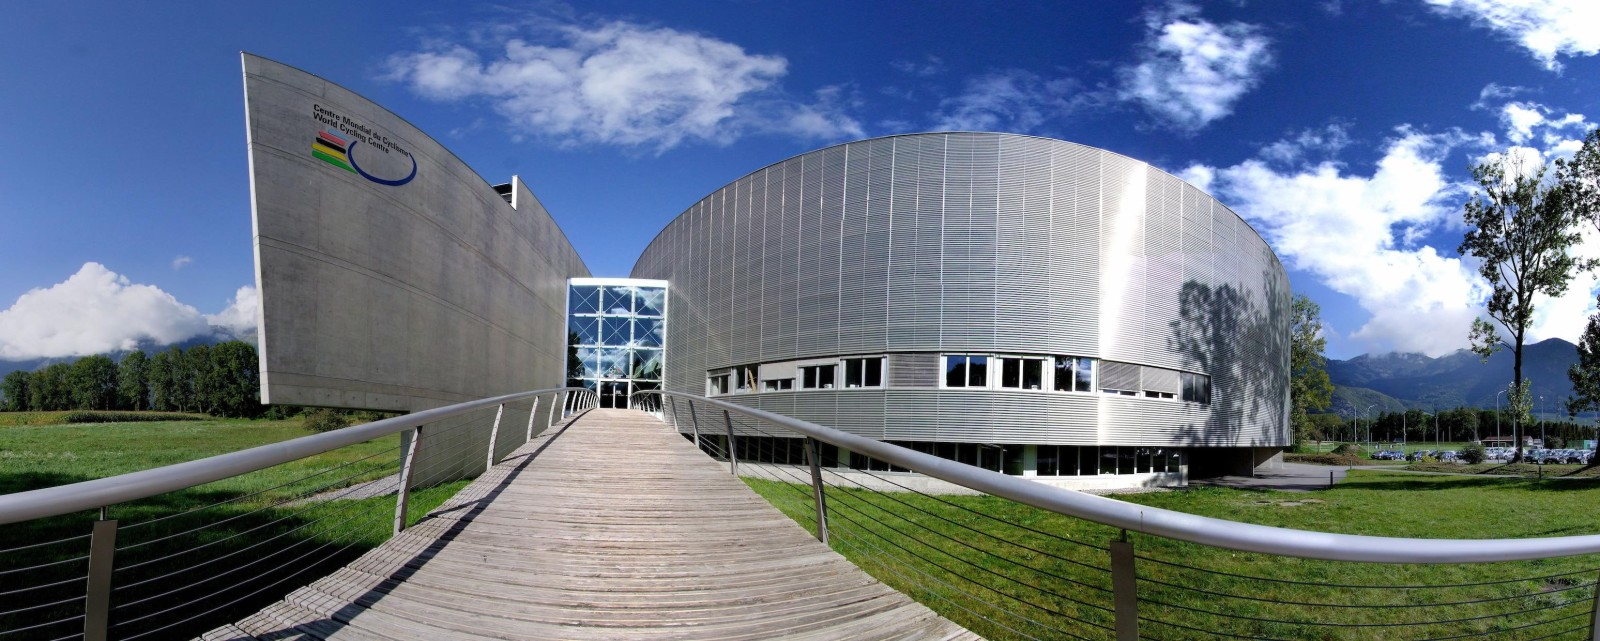 CapoVelo com | Sufferfest to Hold Training at UCI Cycling Center